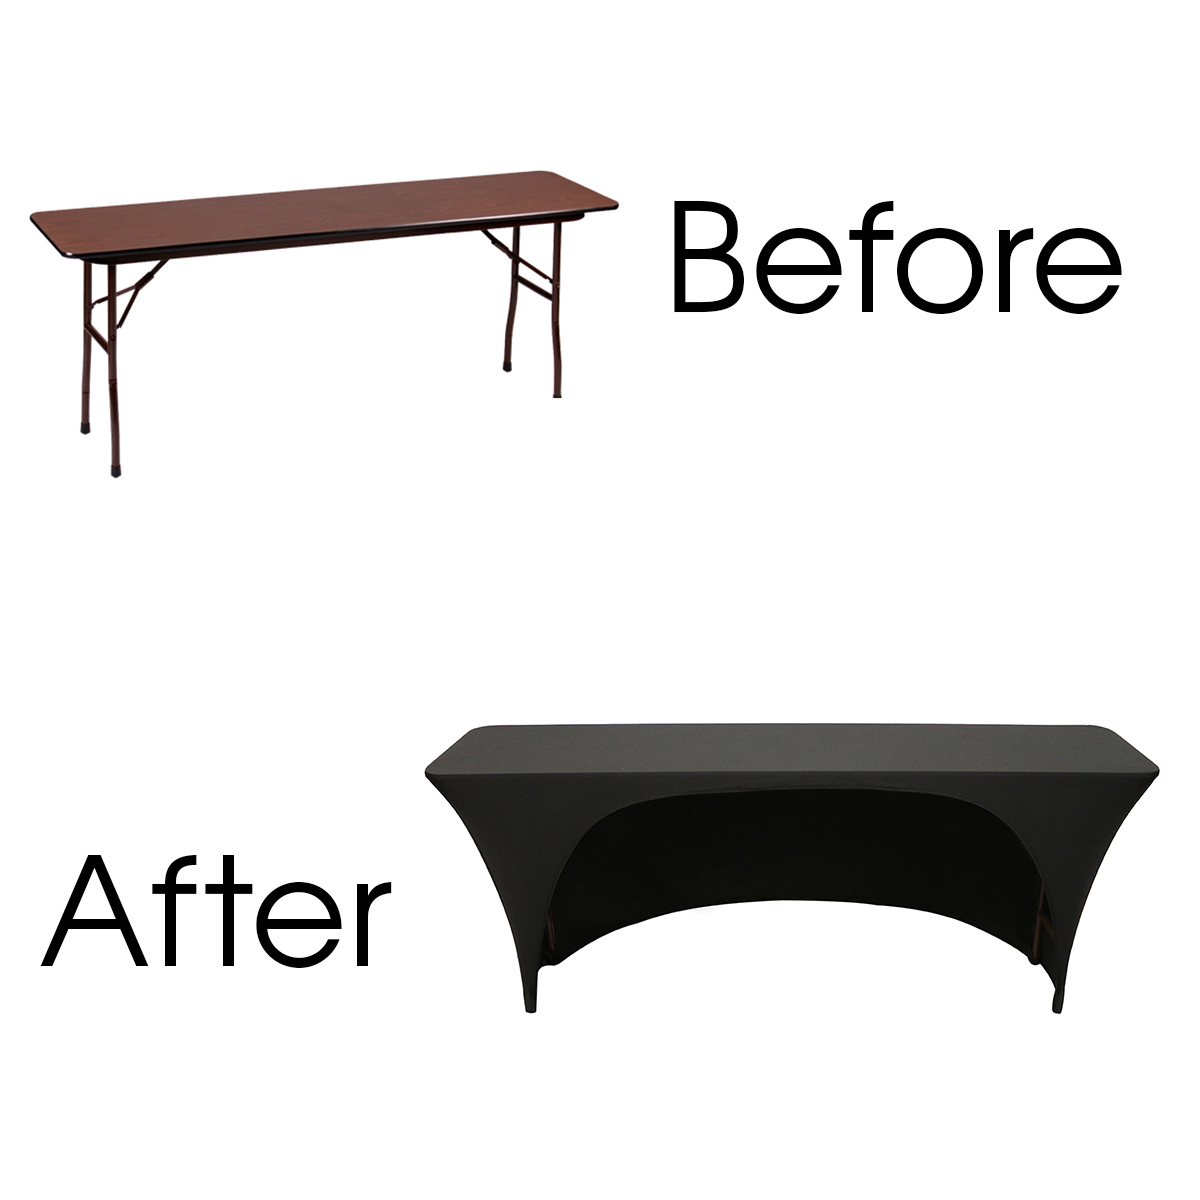 stretch-spandex-6ft-18-inches-open-back-rectangular-table-covers-black-before-after.jpg